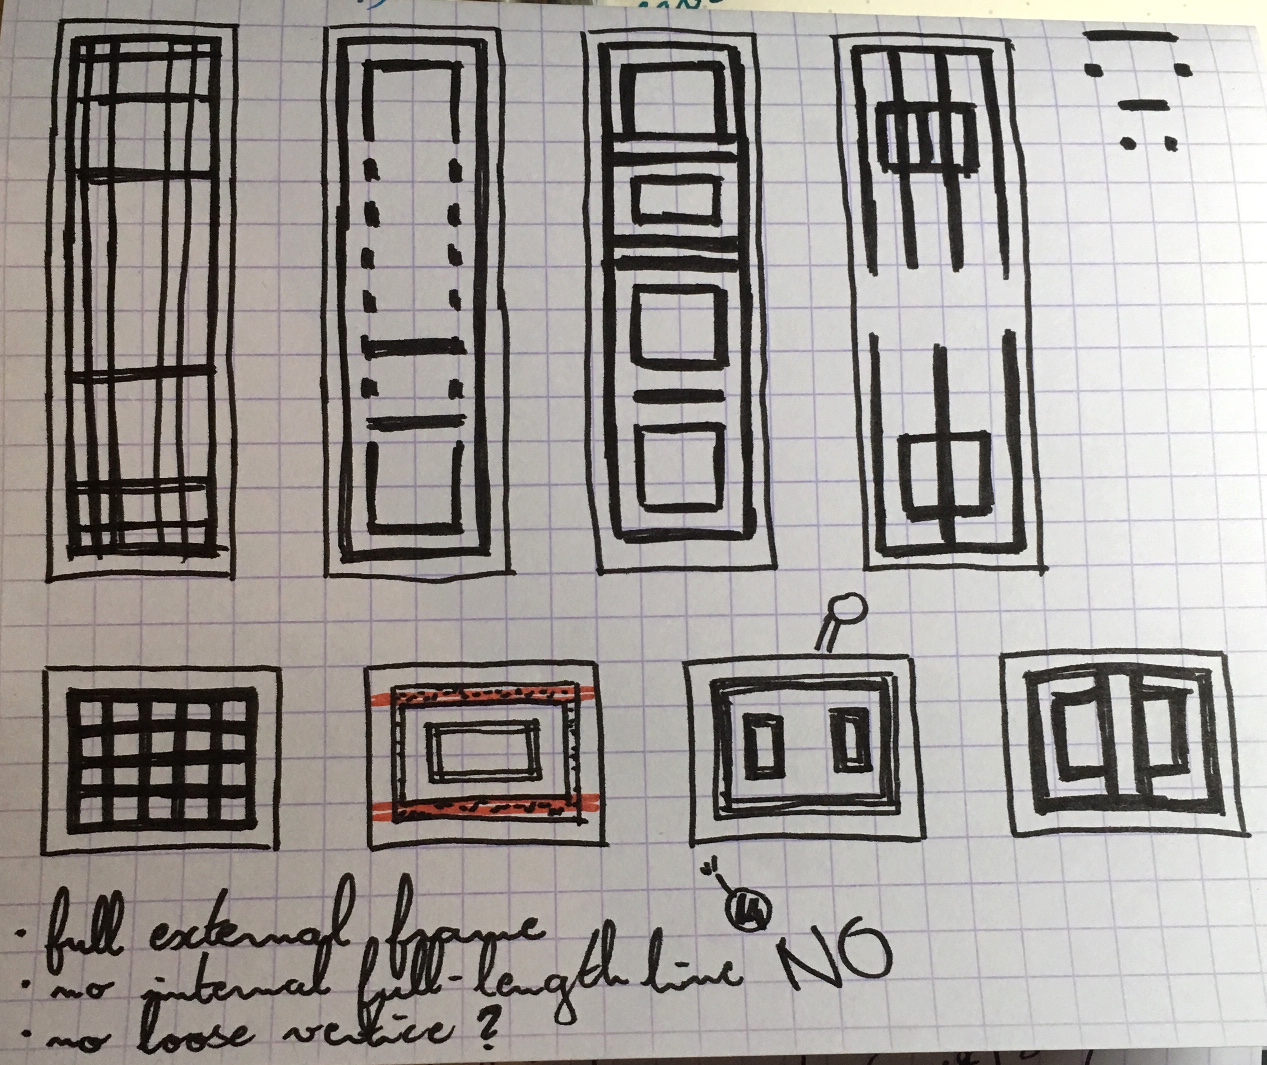 Geometrical sketches in ink on gridded paper. One looks like Bomberman's head and is labeled NO.